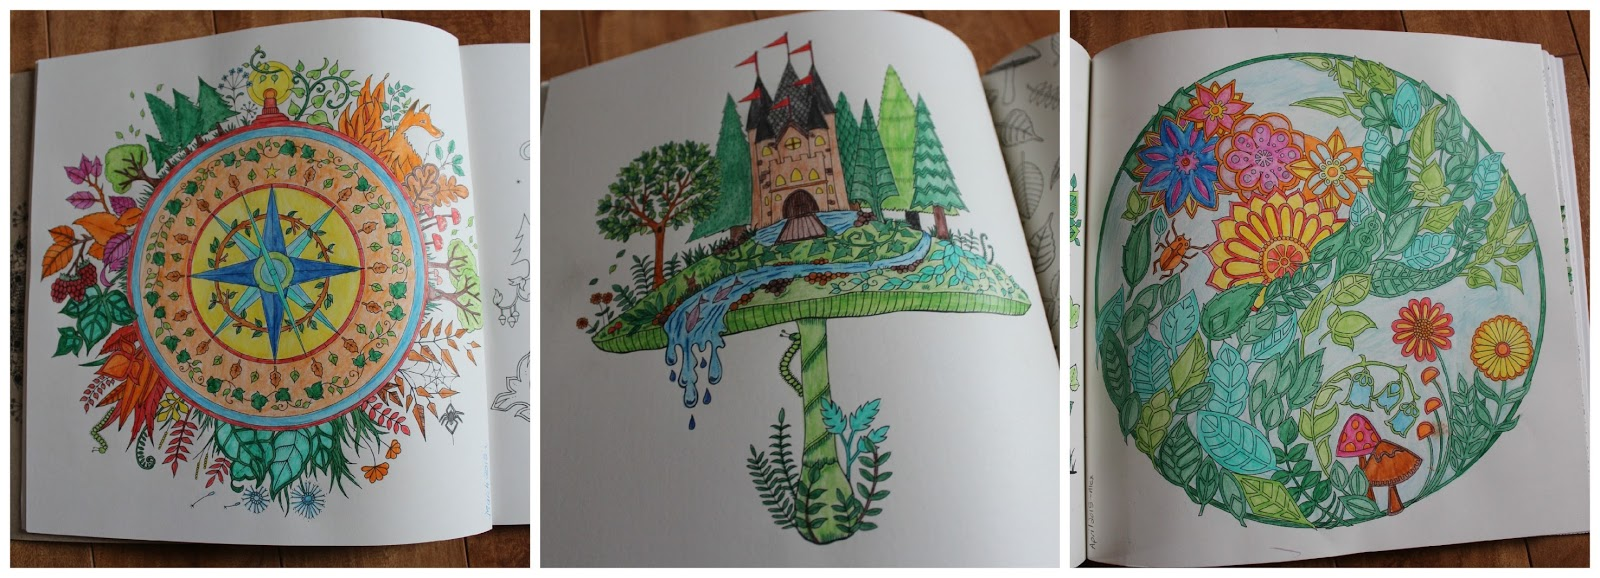 A Few Completed Pages From Enchanted Forest